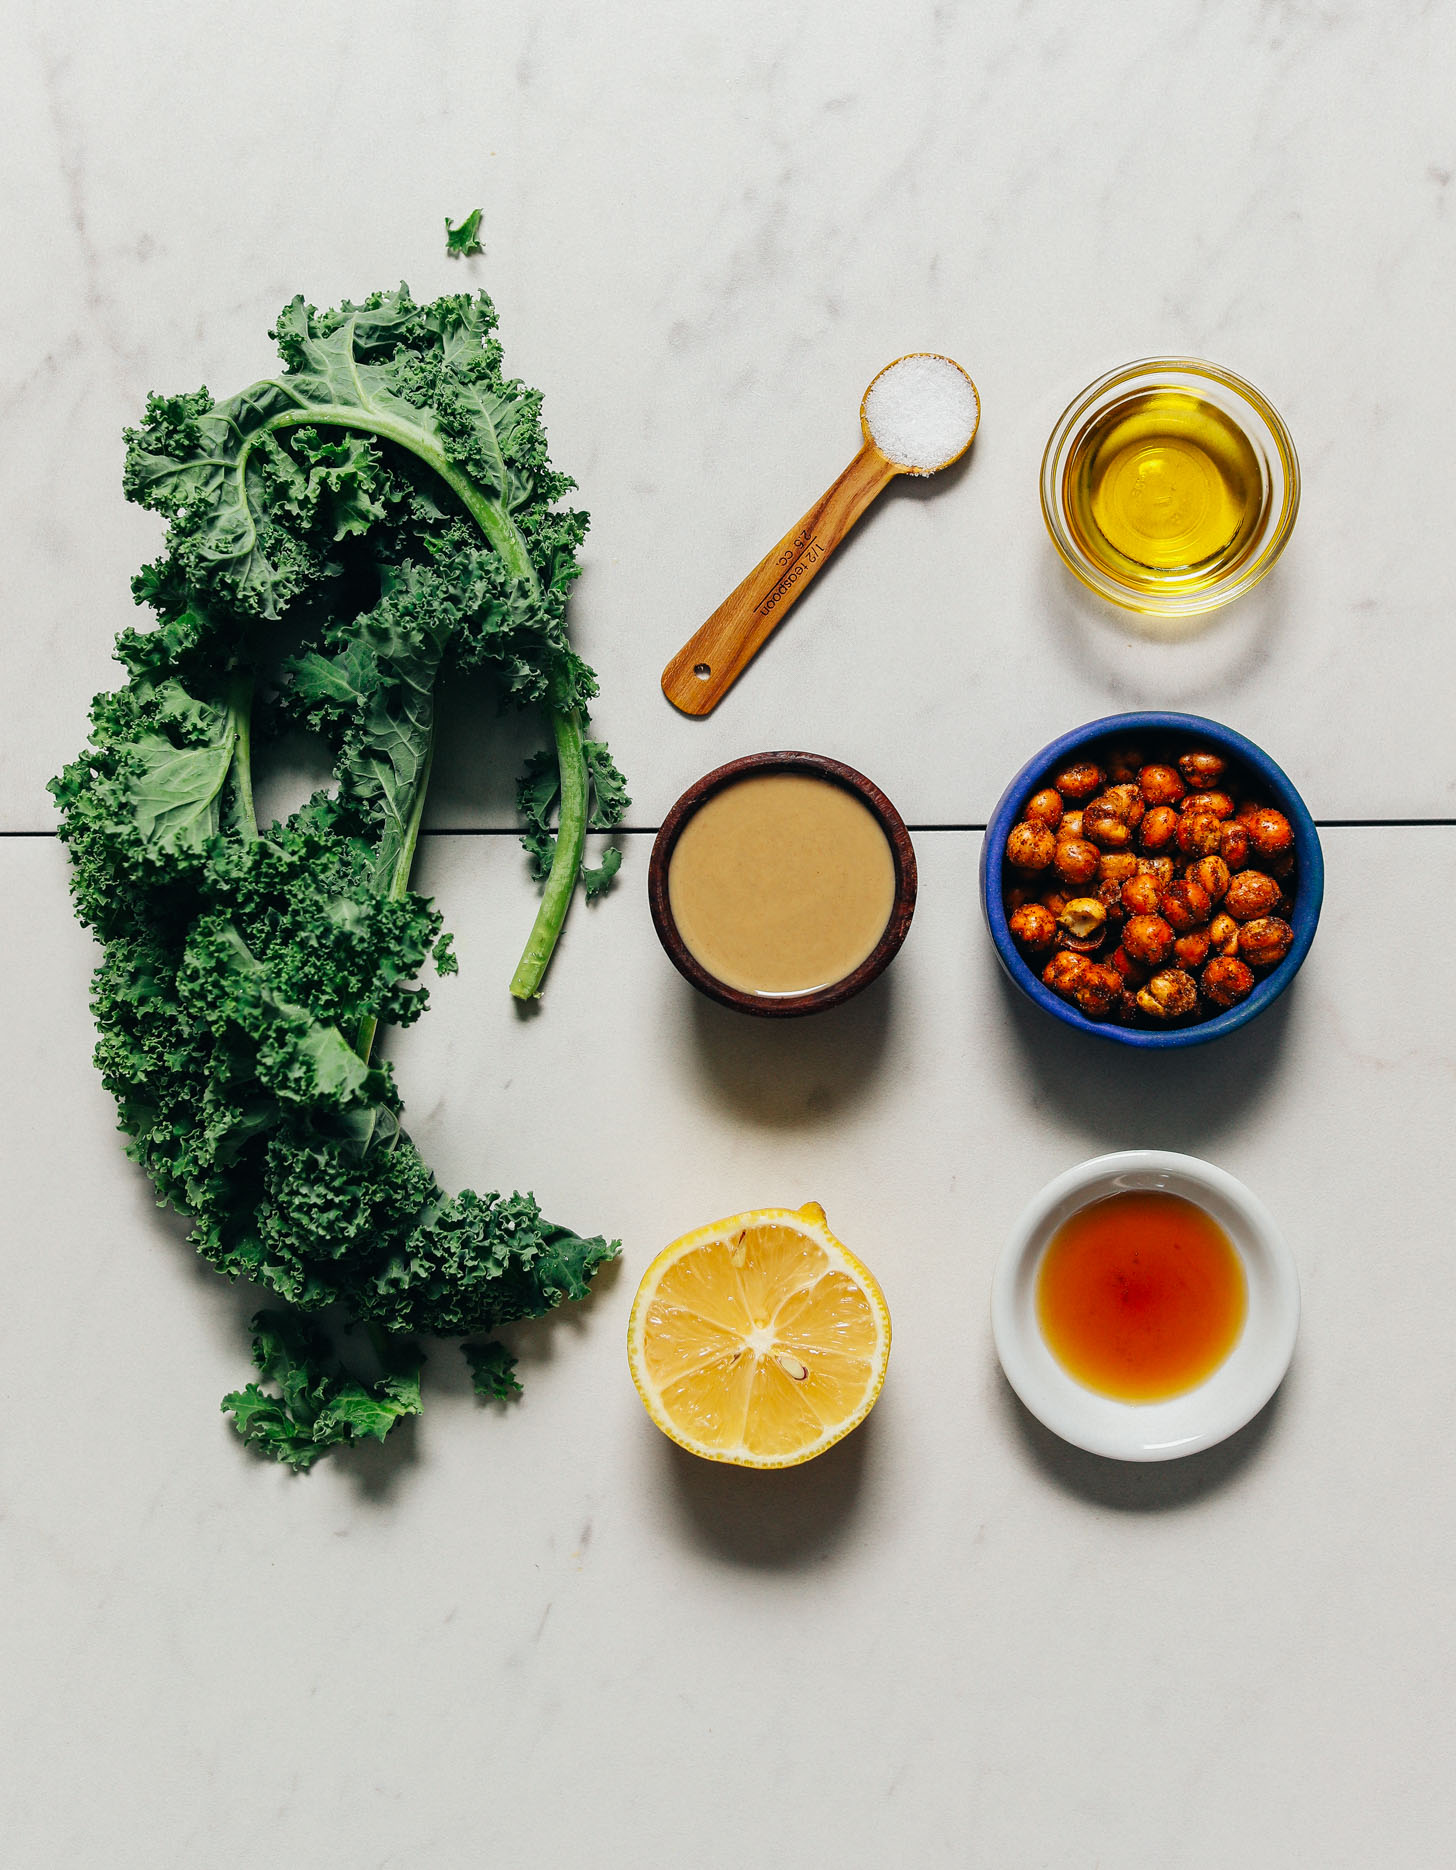 Kale, tahini, chickpeas, and other ingredients for making our Easy Massaged Kale Salad